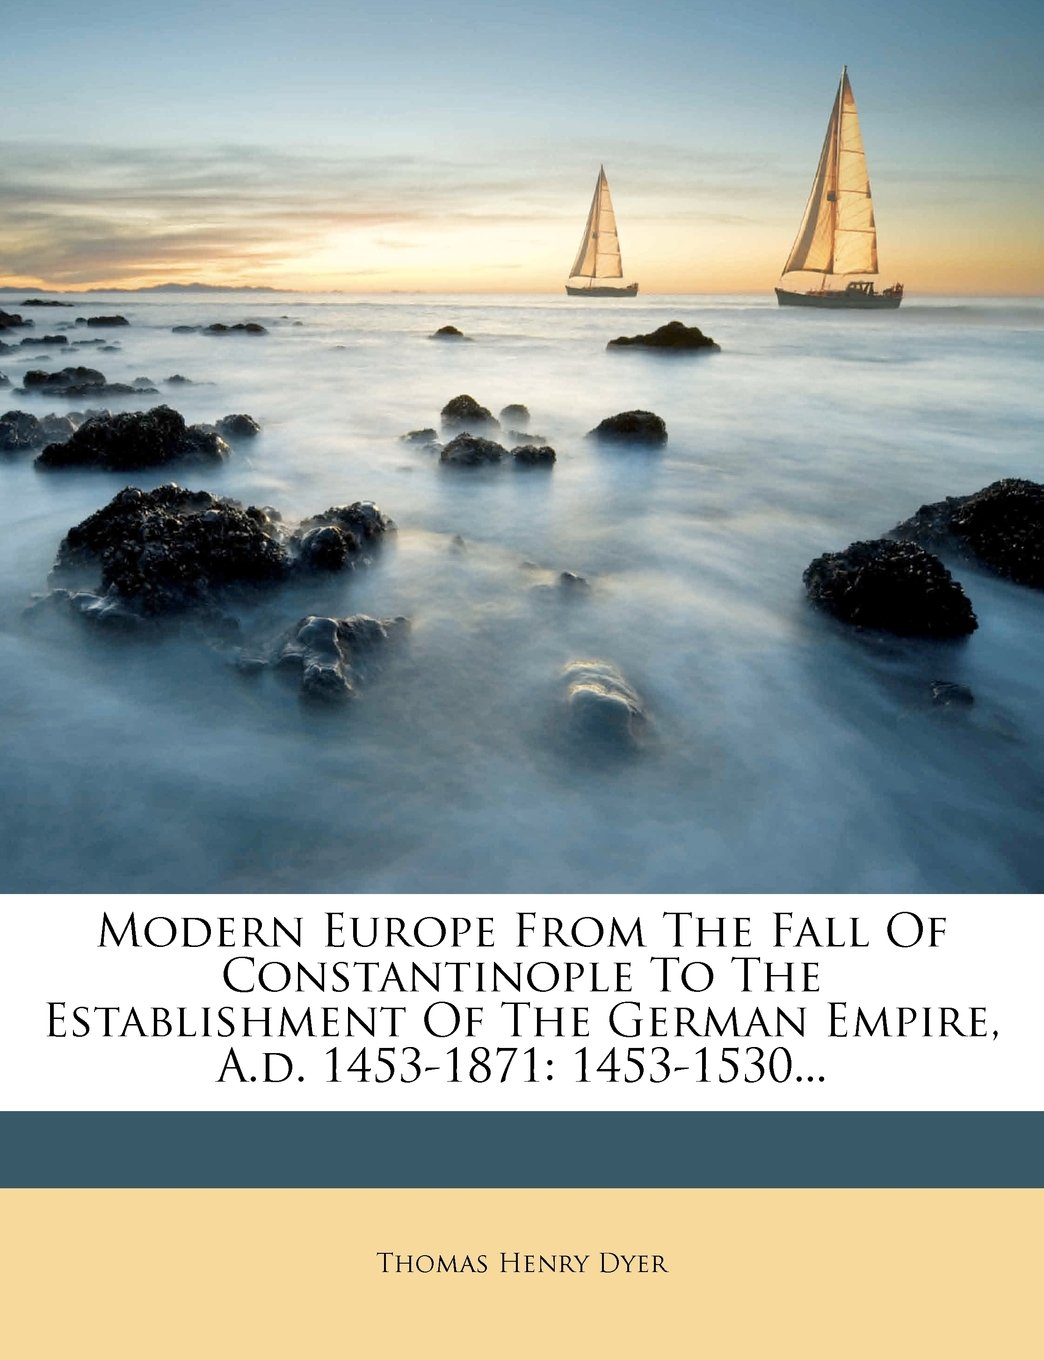 Modern Europe from the Fall of Constantinople to the Establishment of the German Empire, A.D. 1453-1871: 1453-1530... PDF